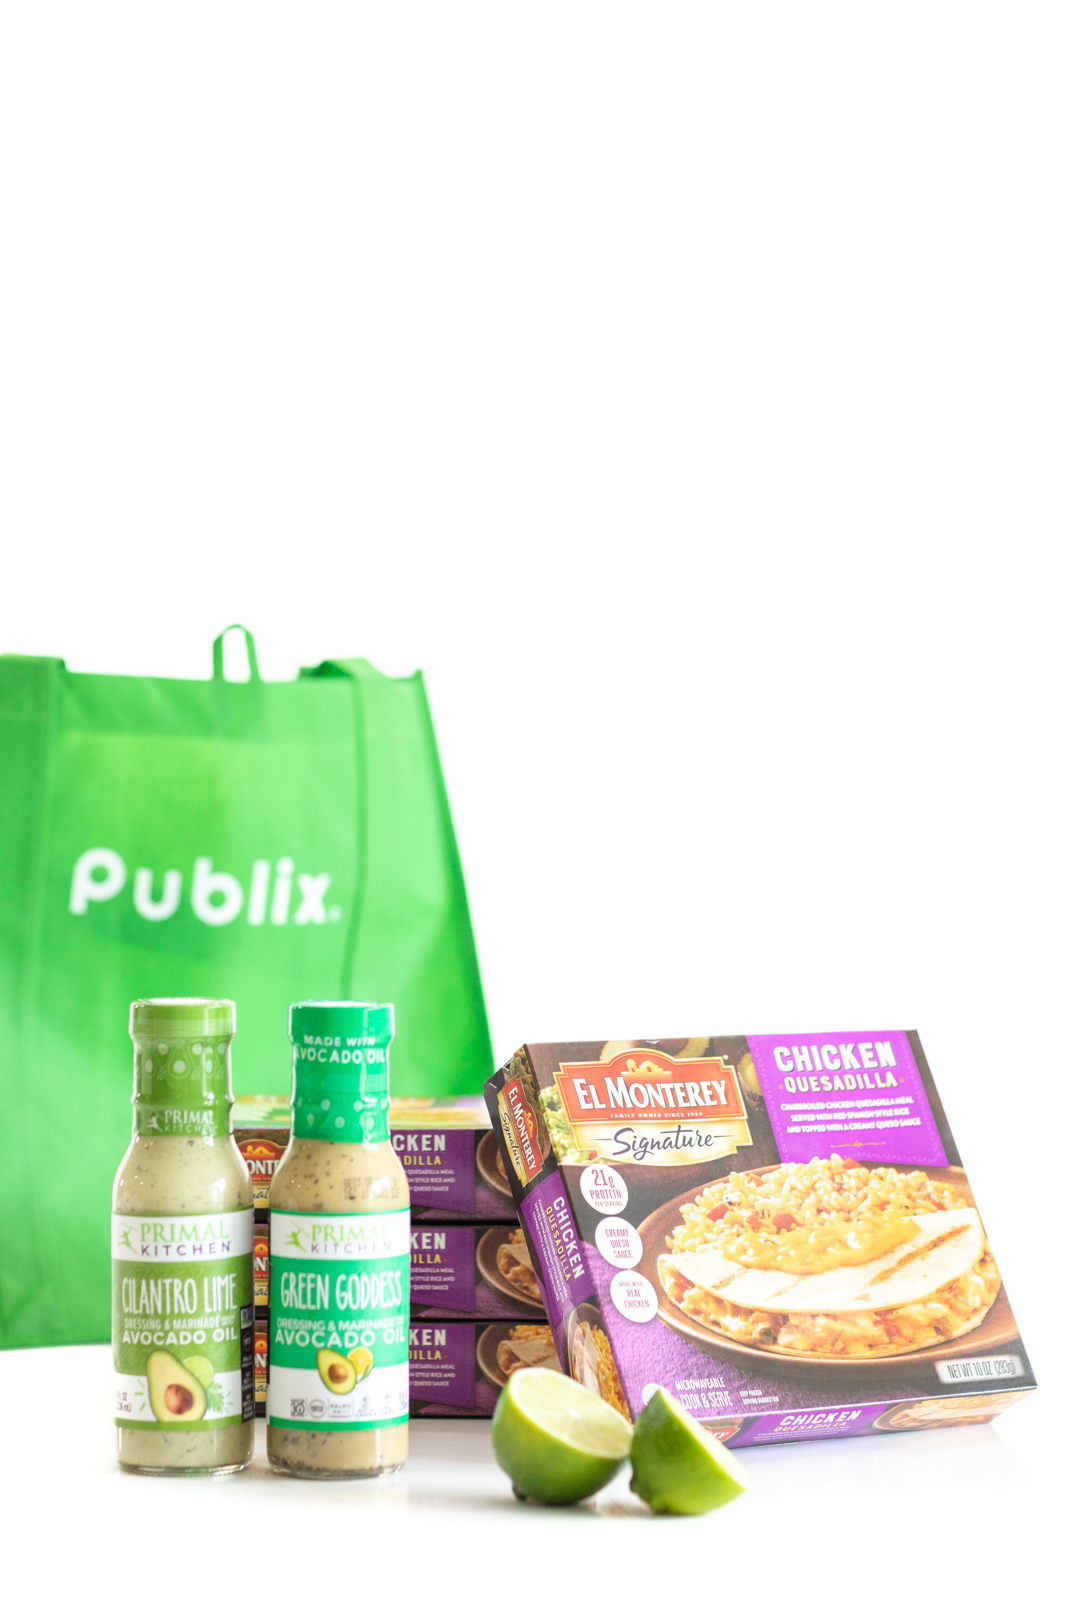 publix reusable shopping bag, Primal Kitchen salad dressings lime and cilantro and green goddess. El Monterey chicken quesadilla meals.